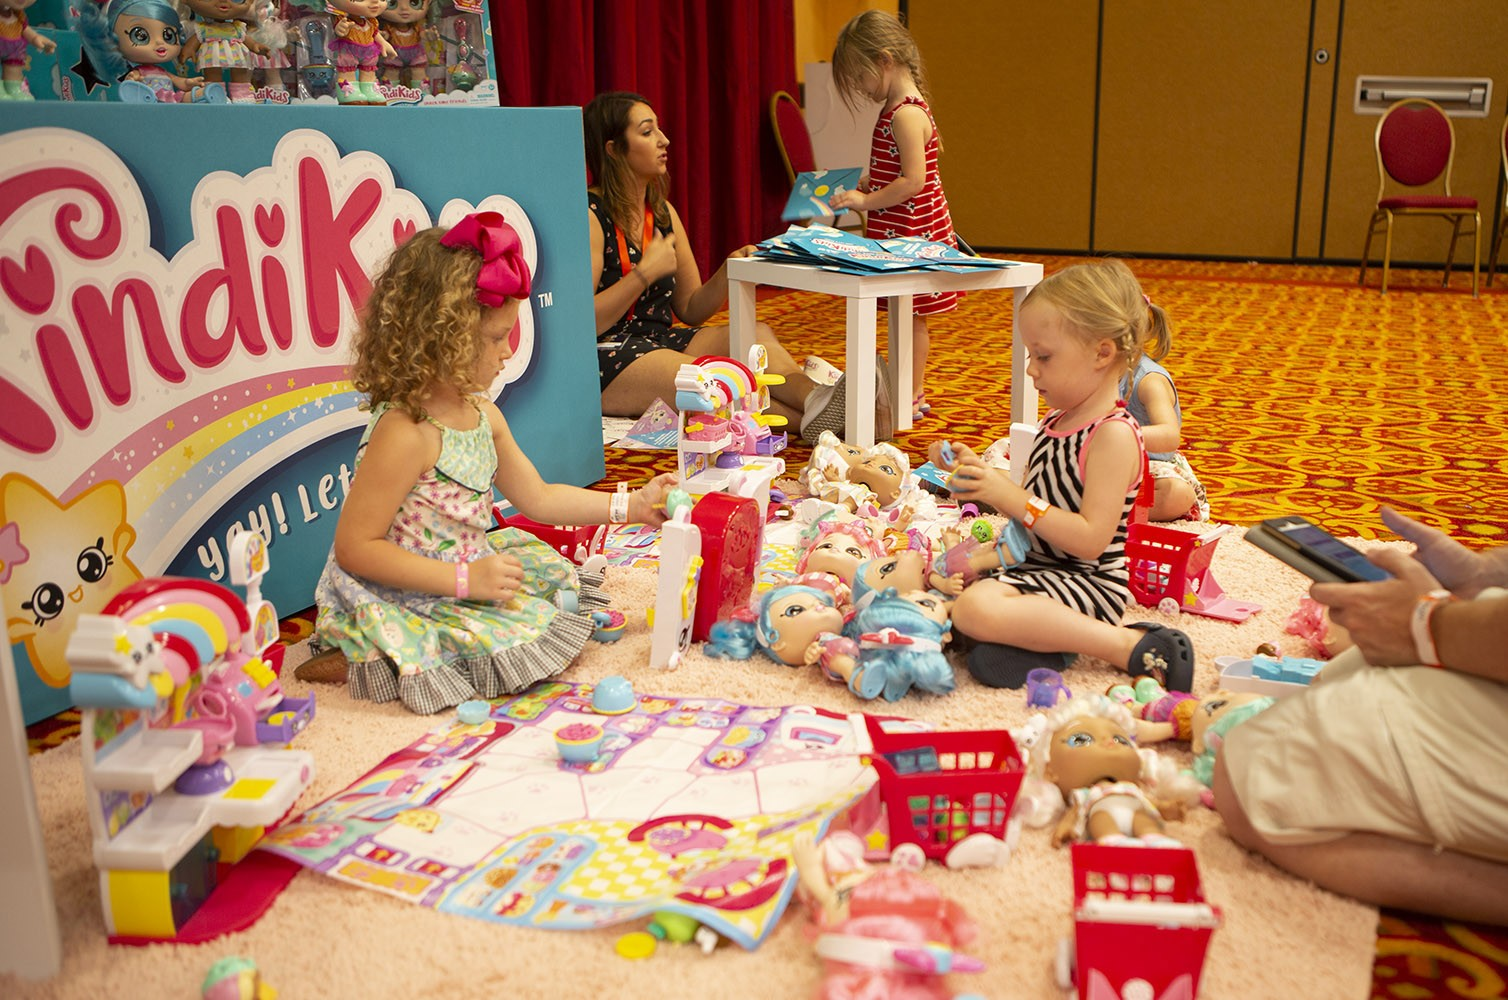 Kids play with toys at Top Rated by Kids event 2019